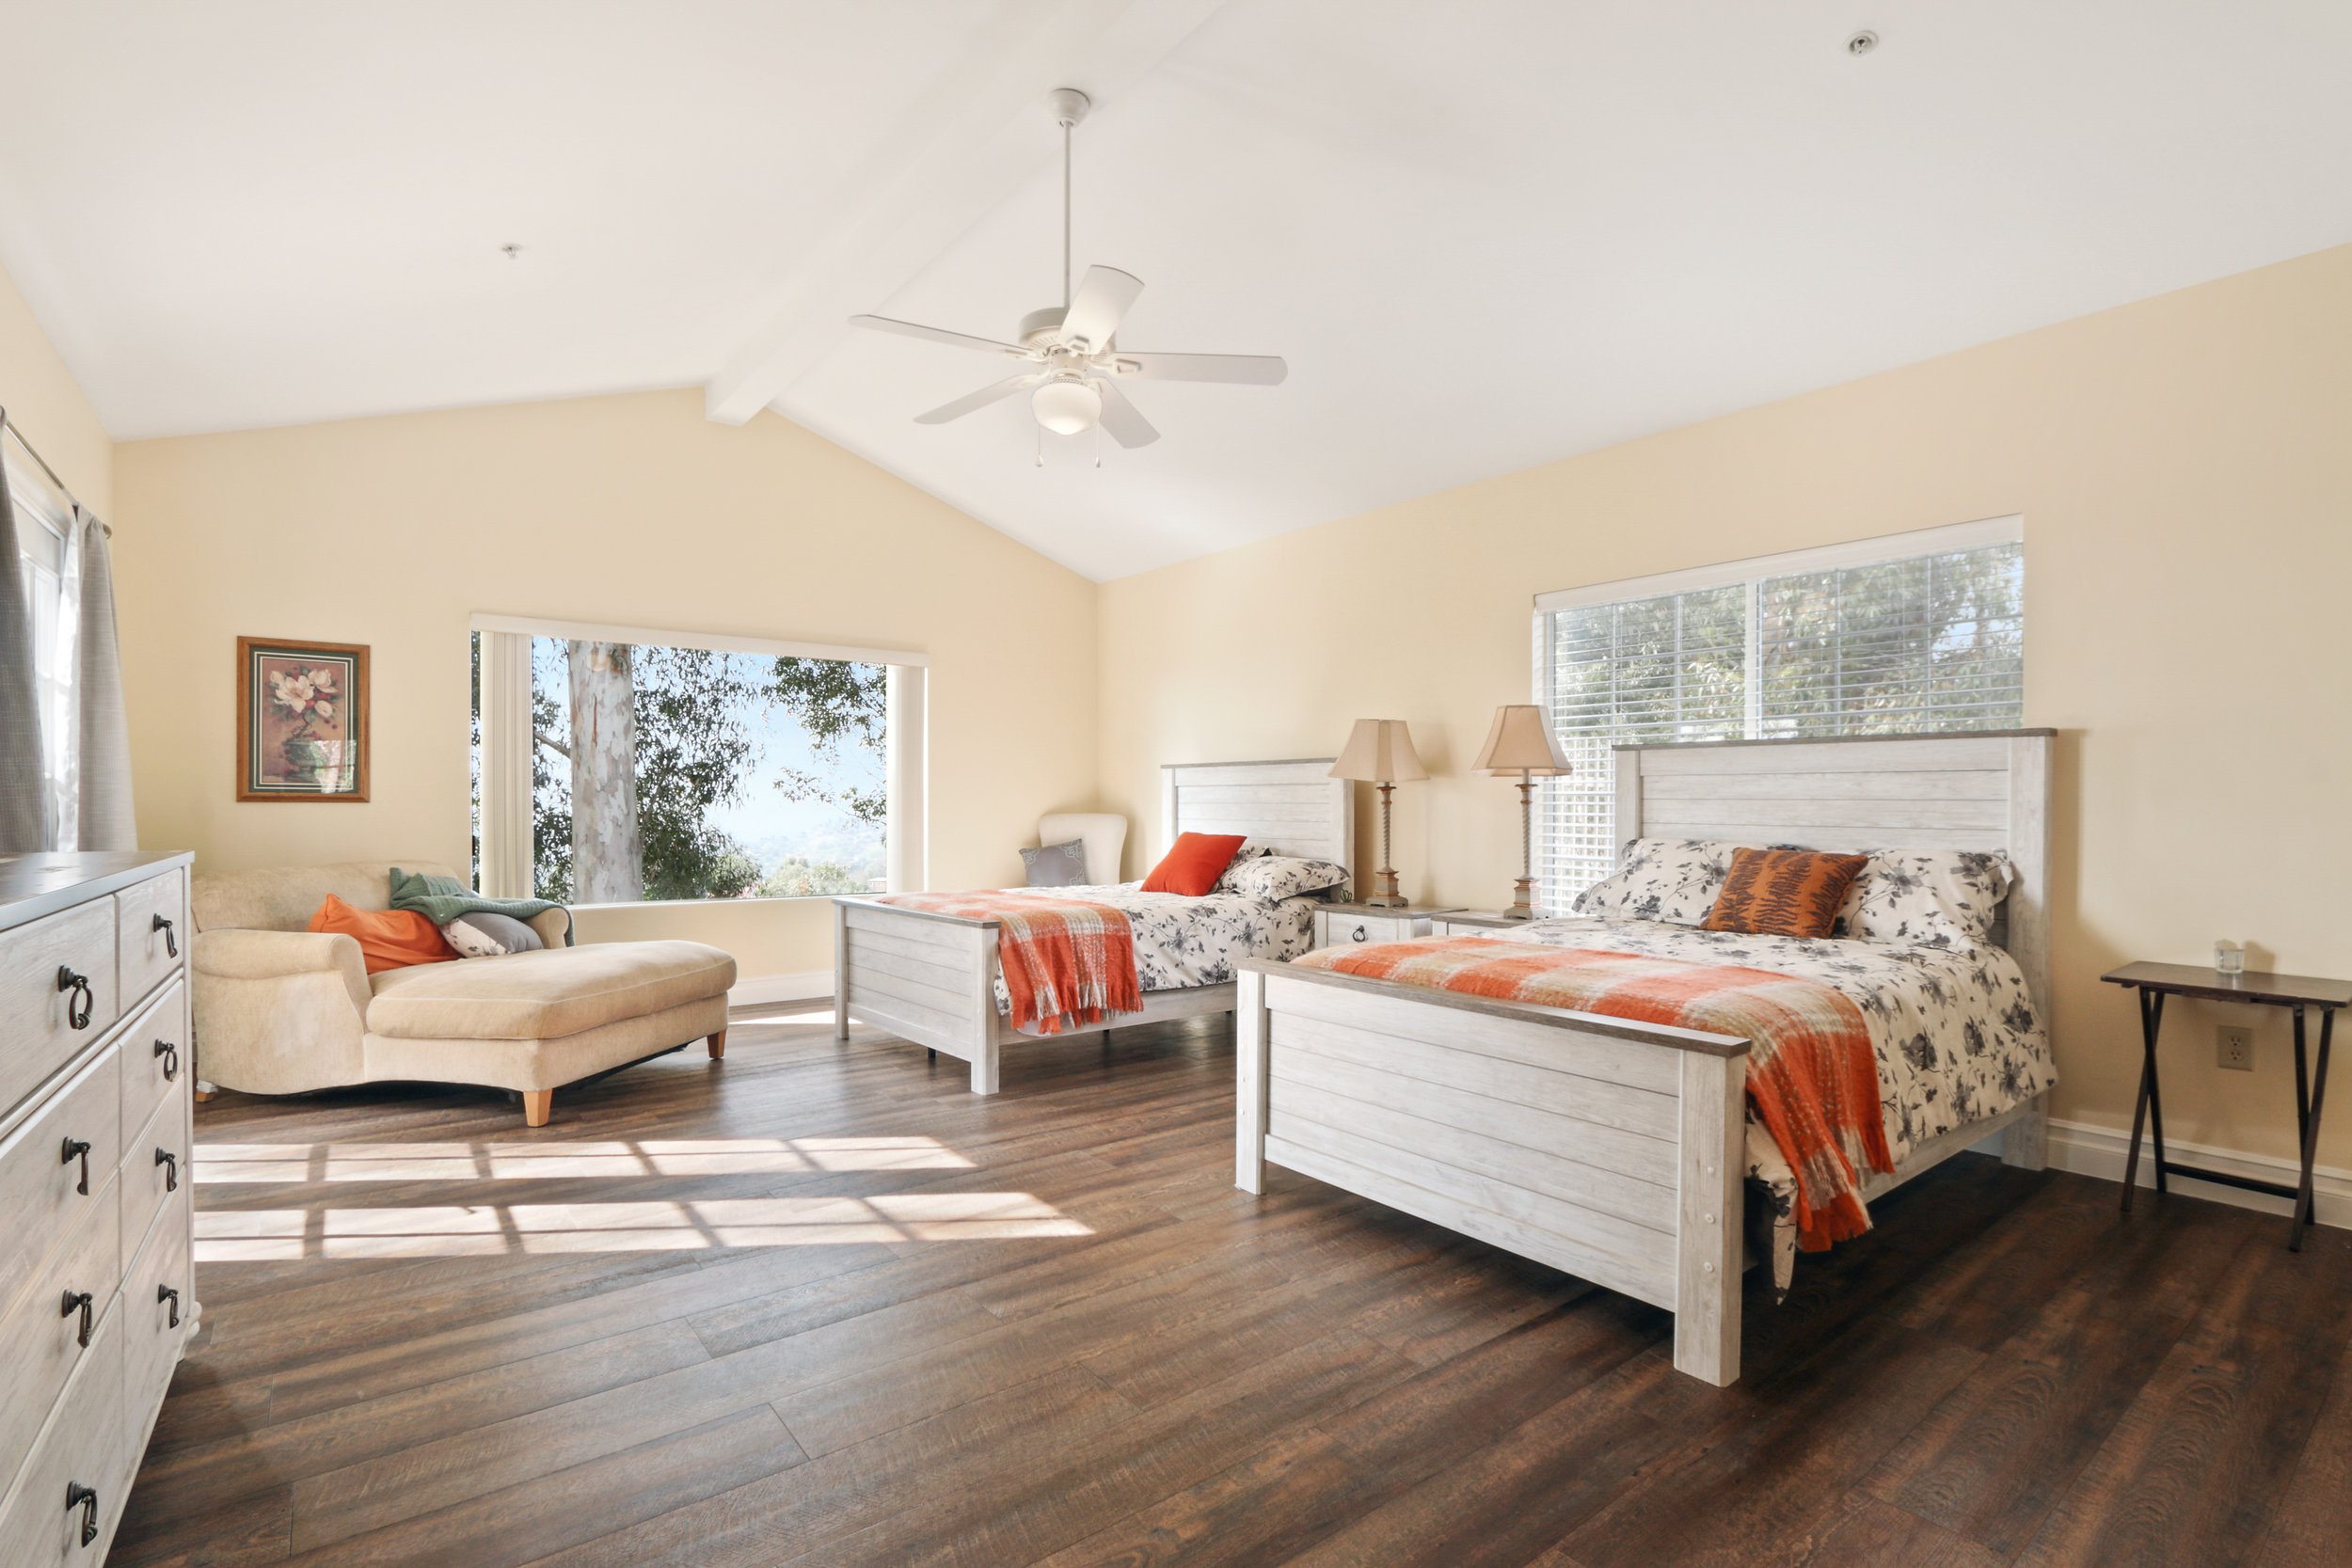 ROOM #1 -Dianne Lamming - Spacious bedroom with vaulted ceiling that offers a breath of fresh air.